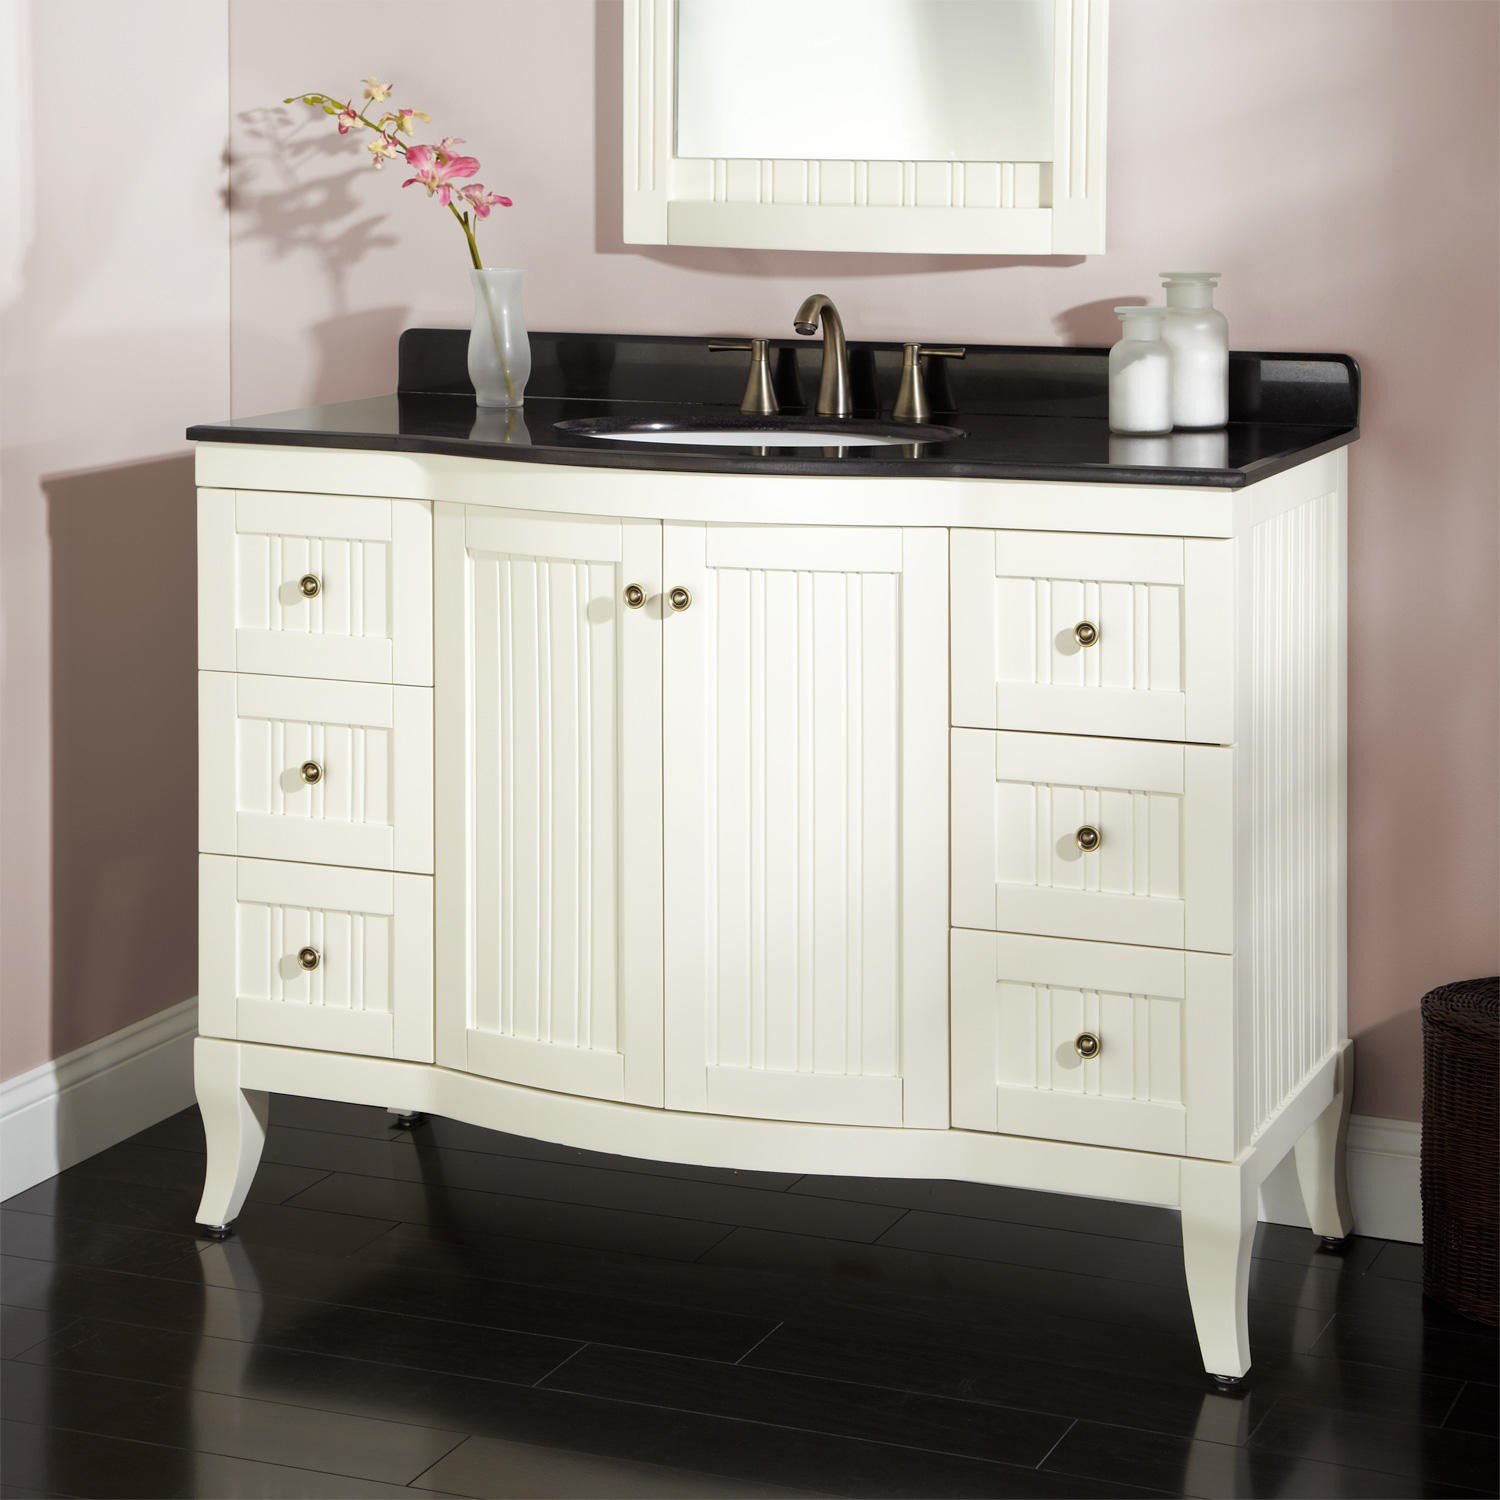 Order elegant 30 bathroom vanity of the best quality